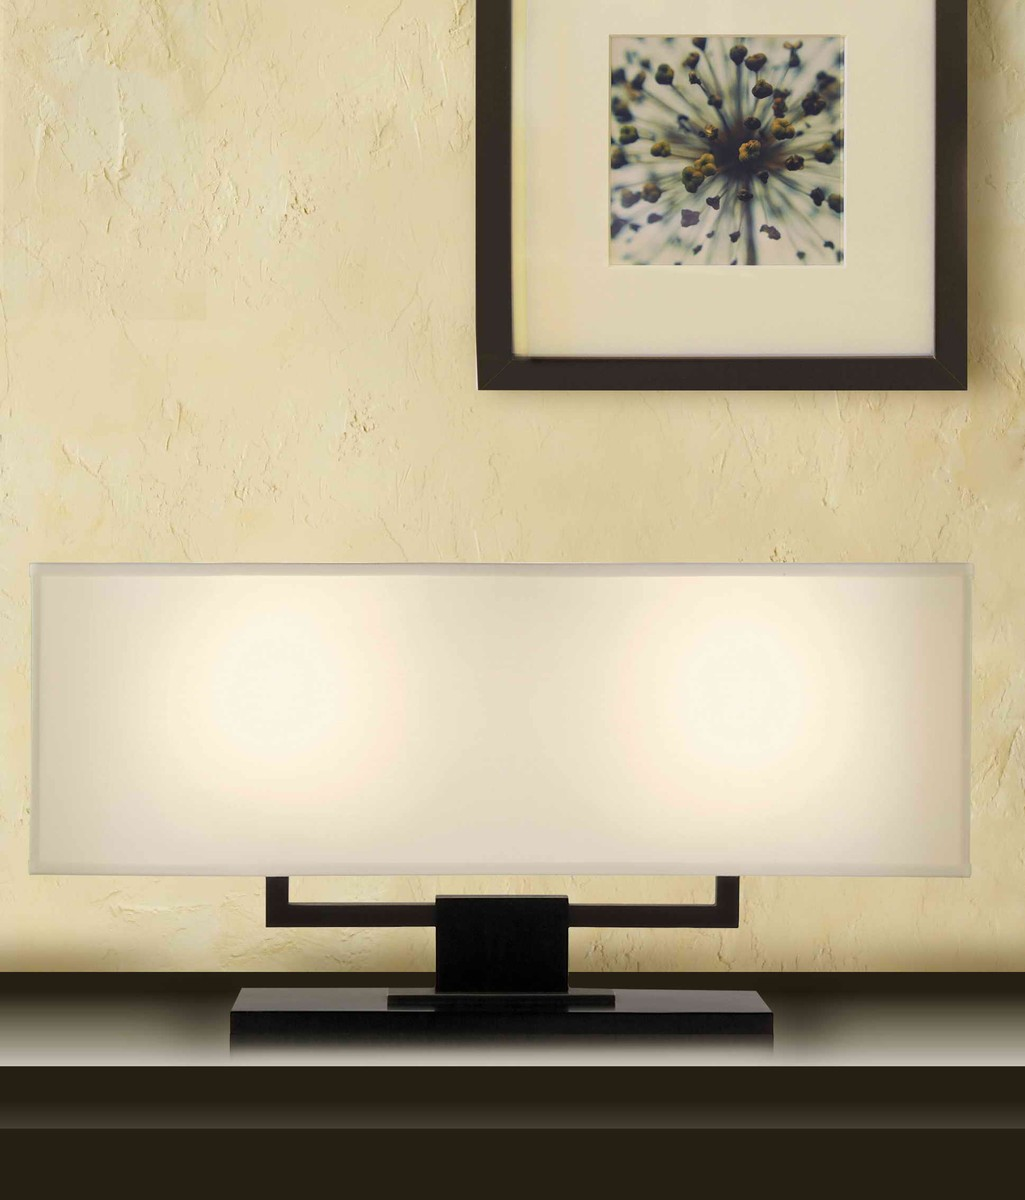 Star nds Alliance - Our nds Banquette Lamp on